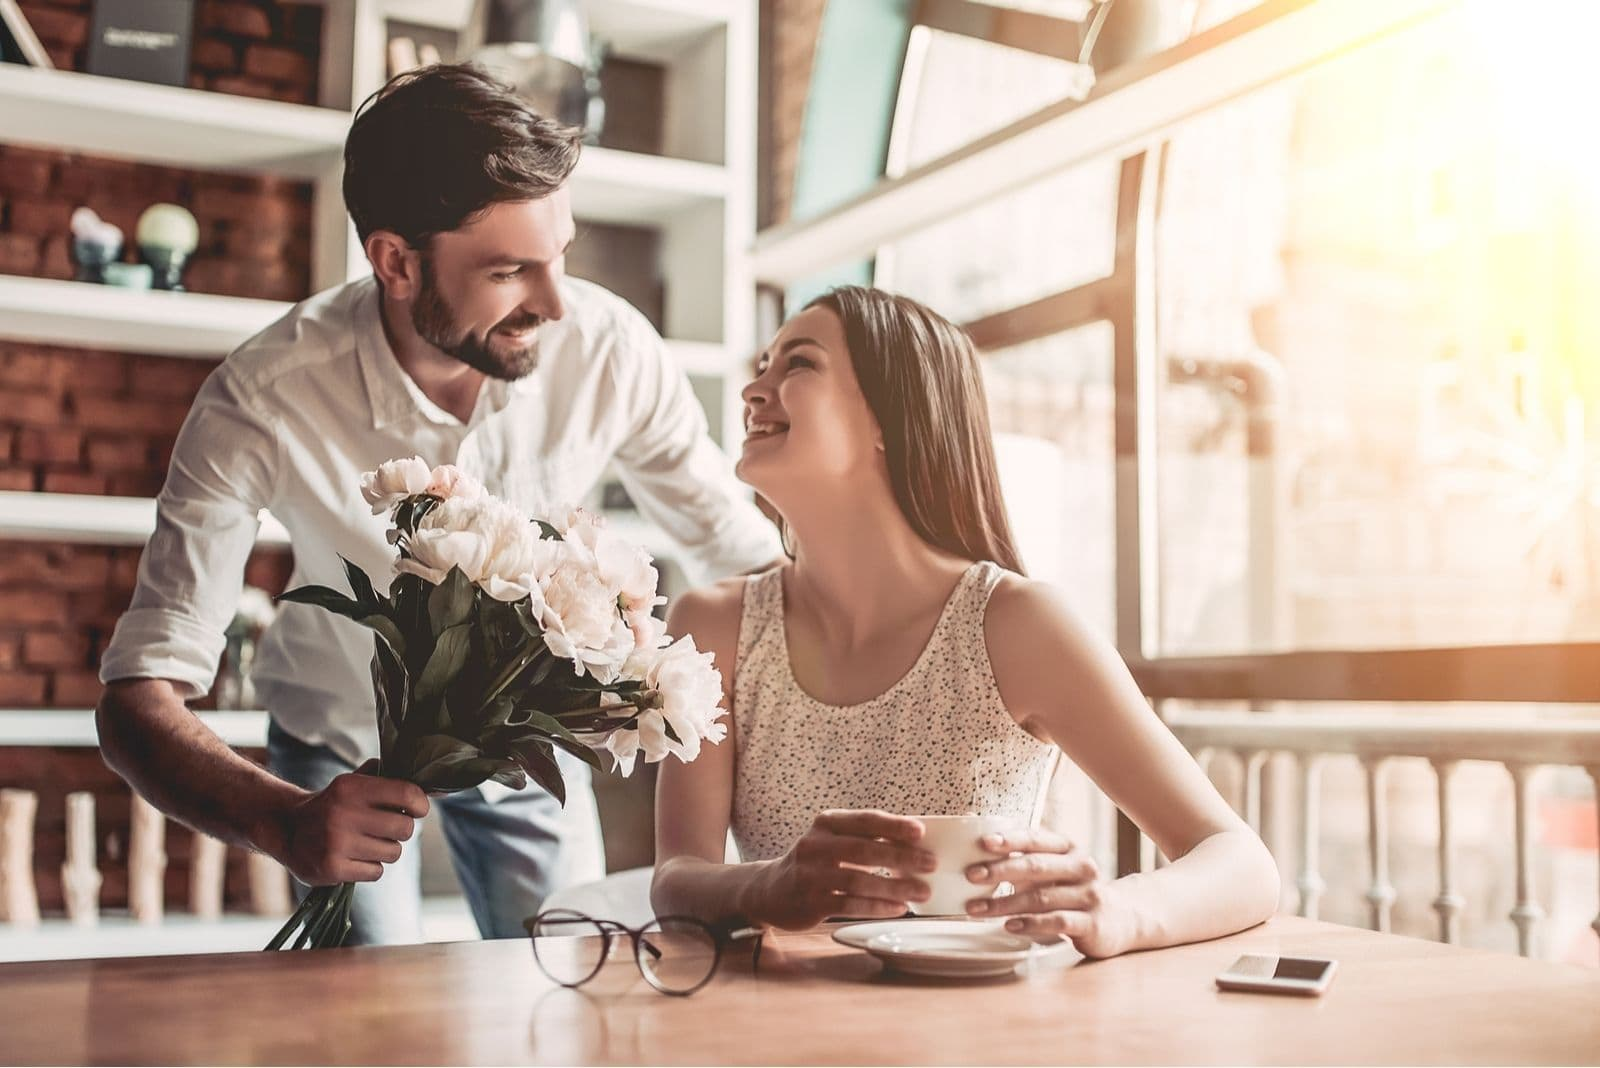 sweet guy surprising her girlfriend with flowers while drinking her coffee in a cafe